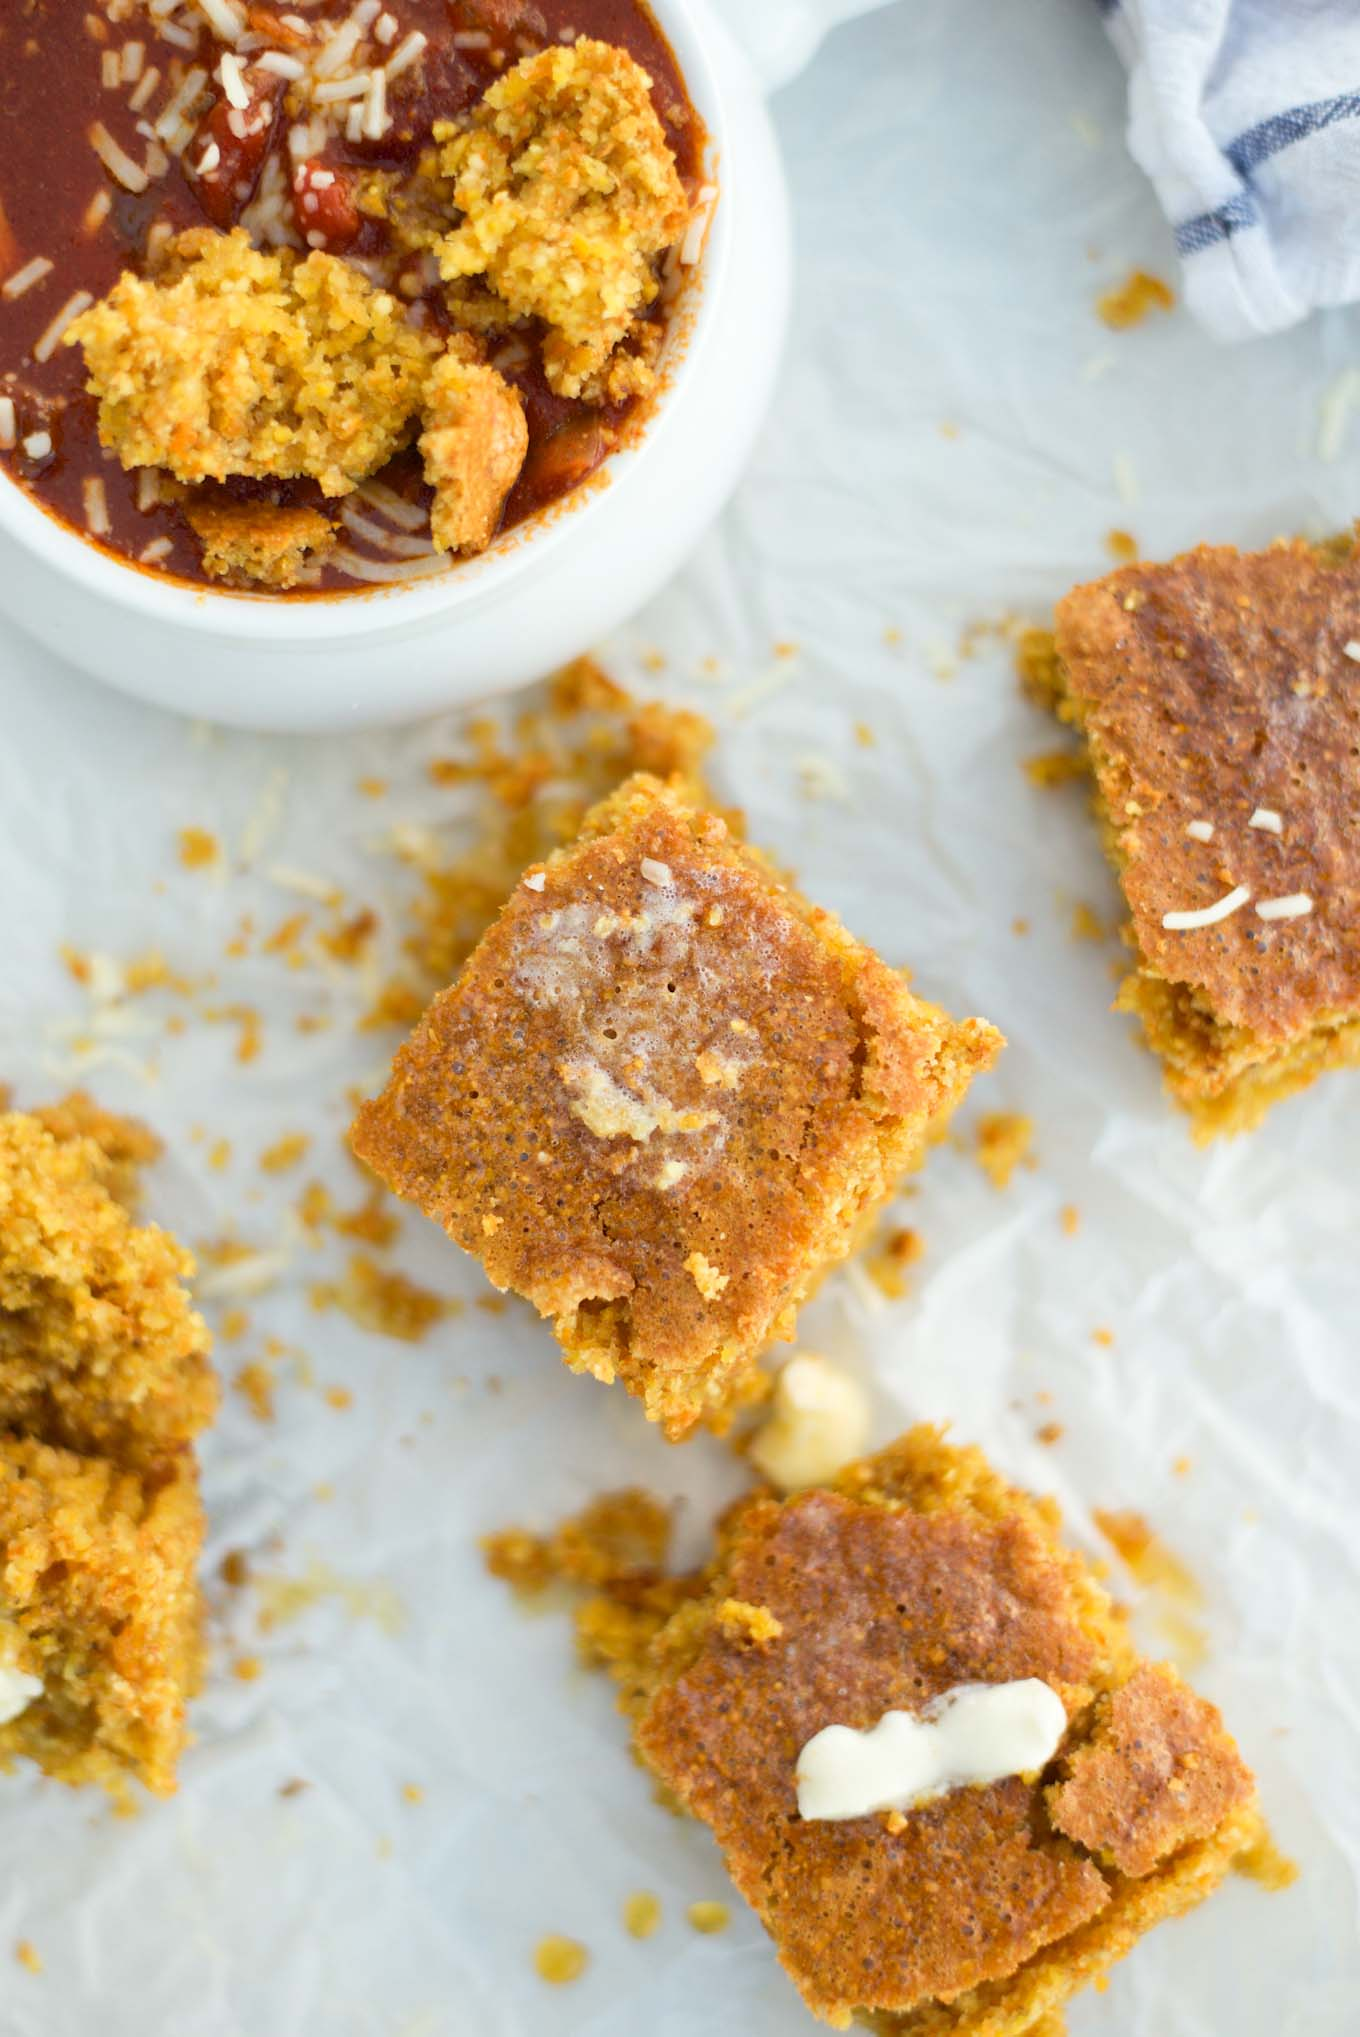 Moist crumbly gluten-free cornbread that is made in less than 10 minutes and in one bowl.